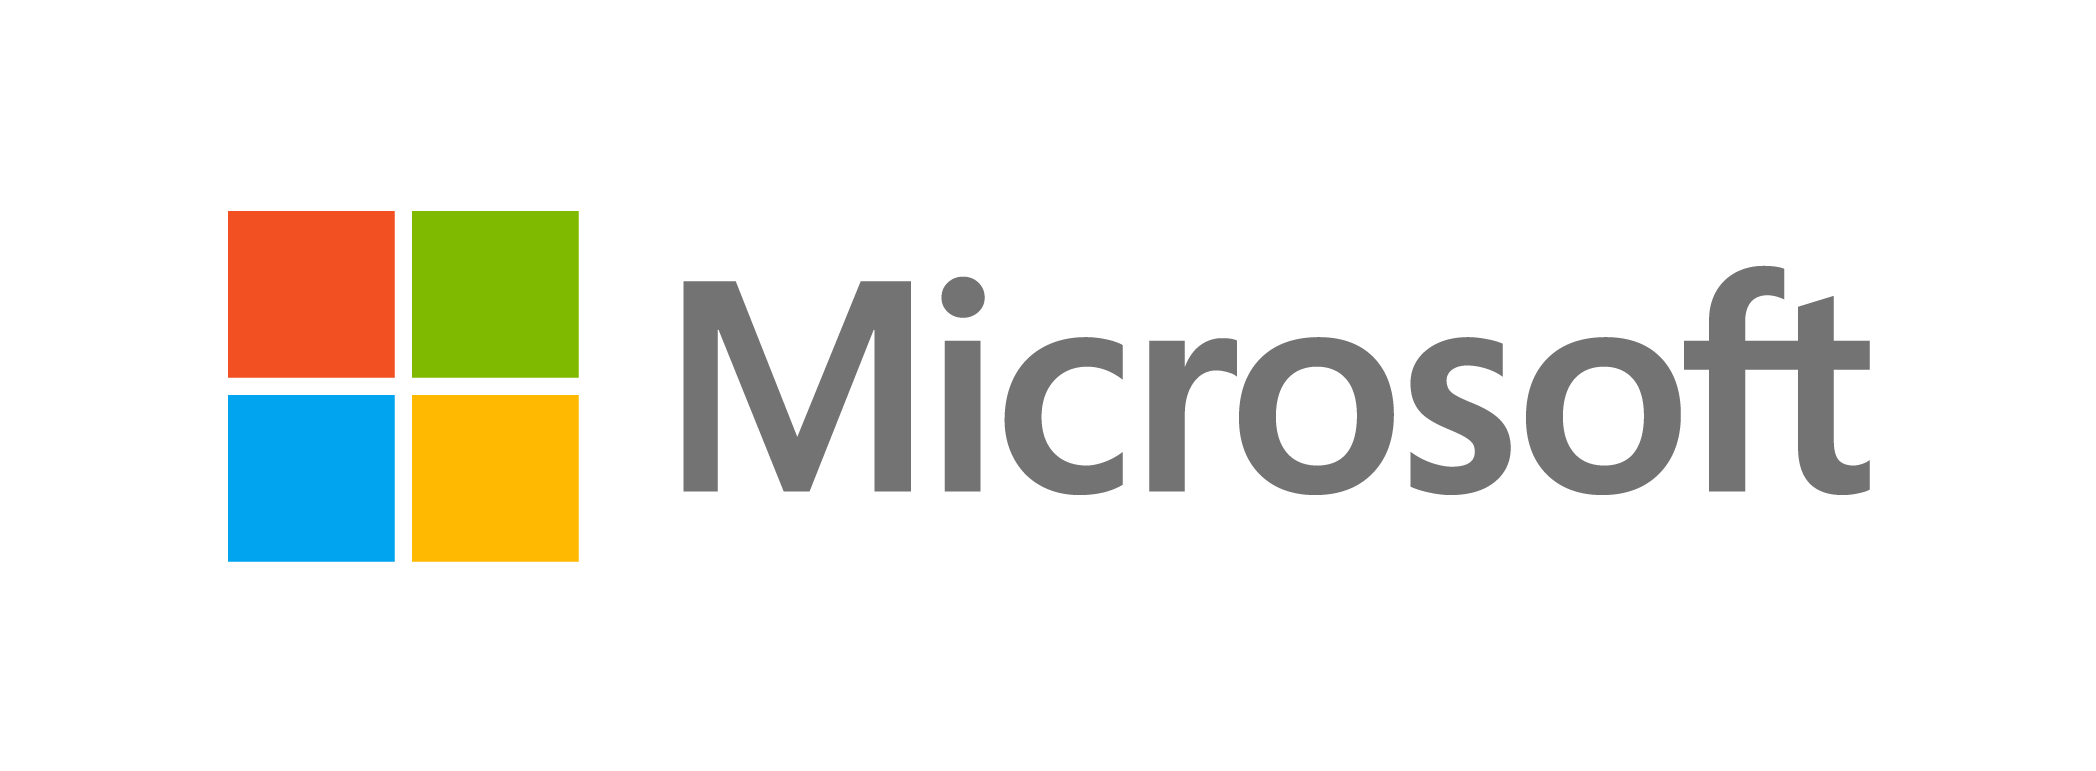 Microsoft Partner | Office 365 & Dynamics CRM